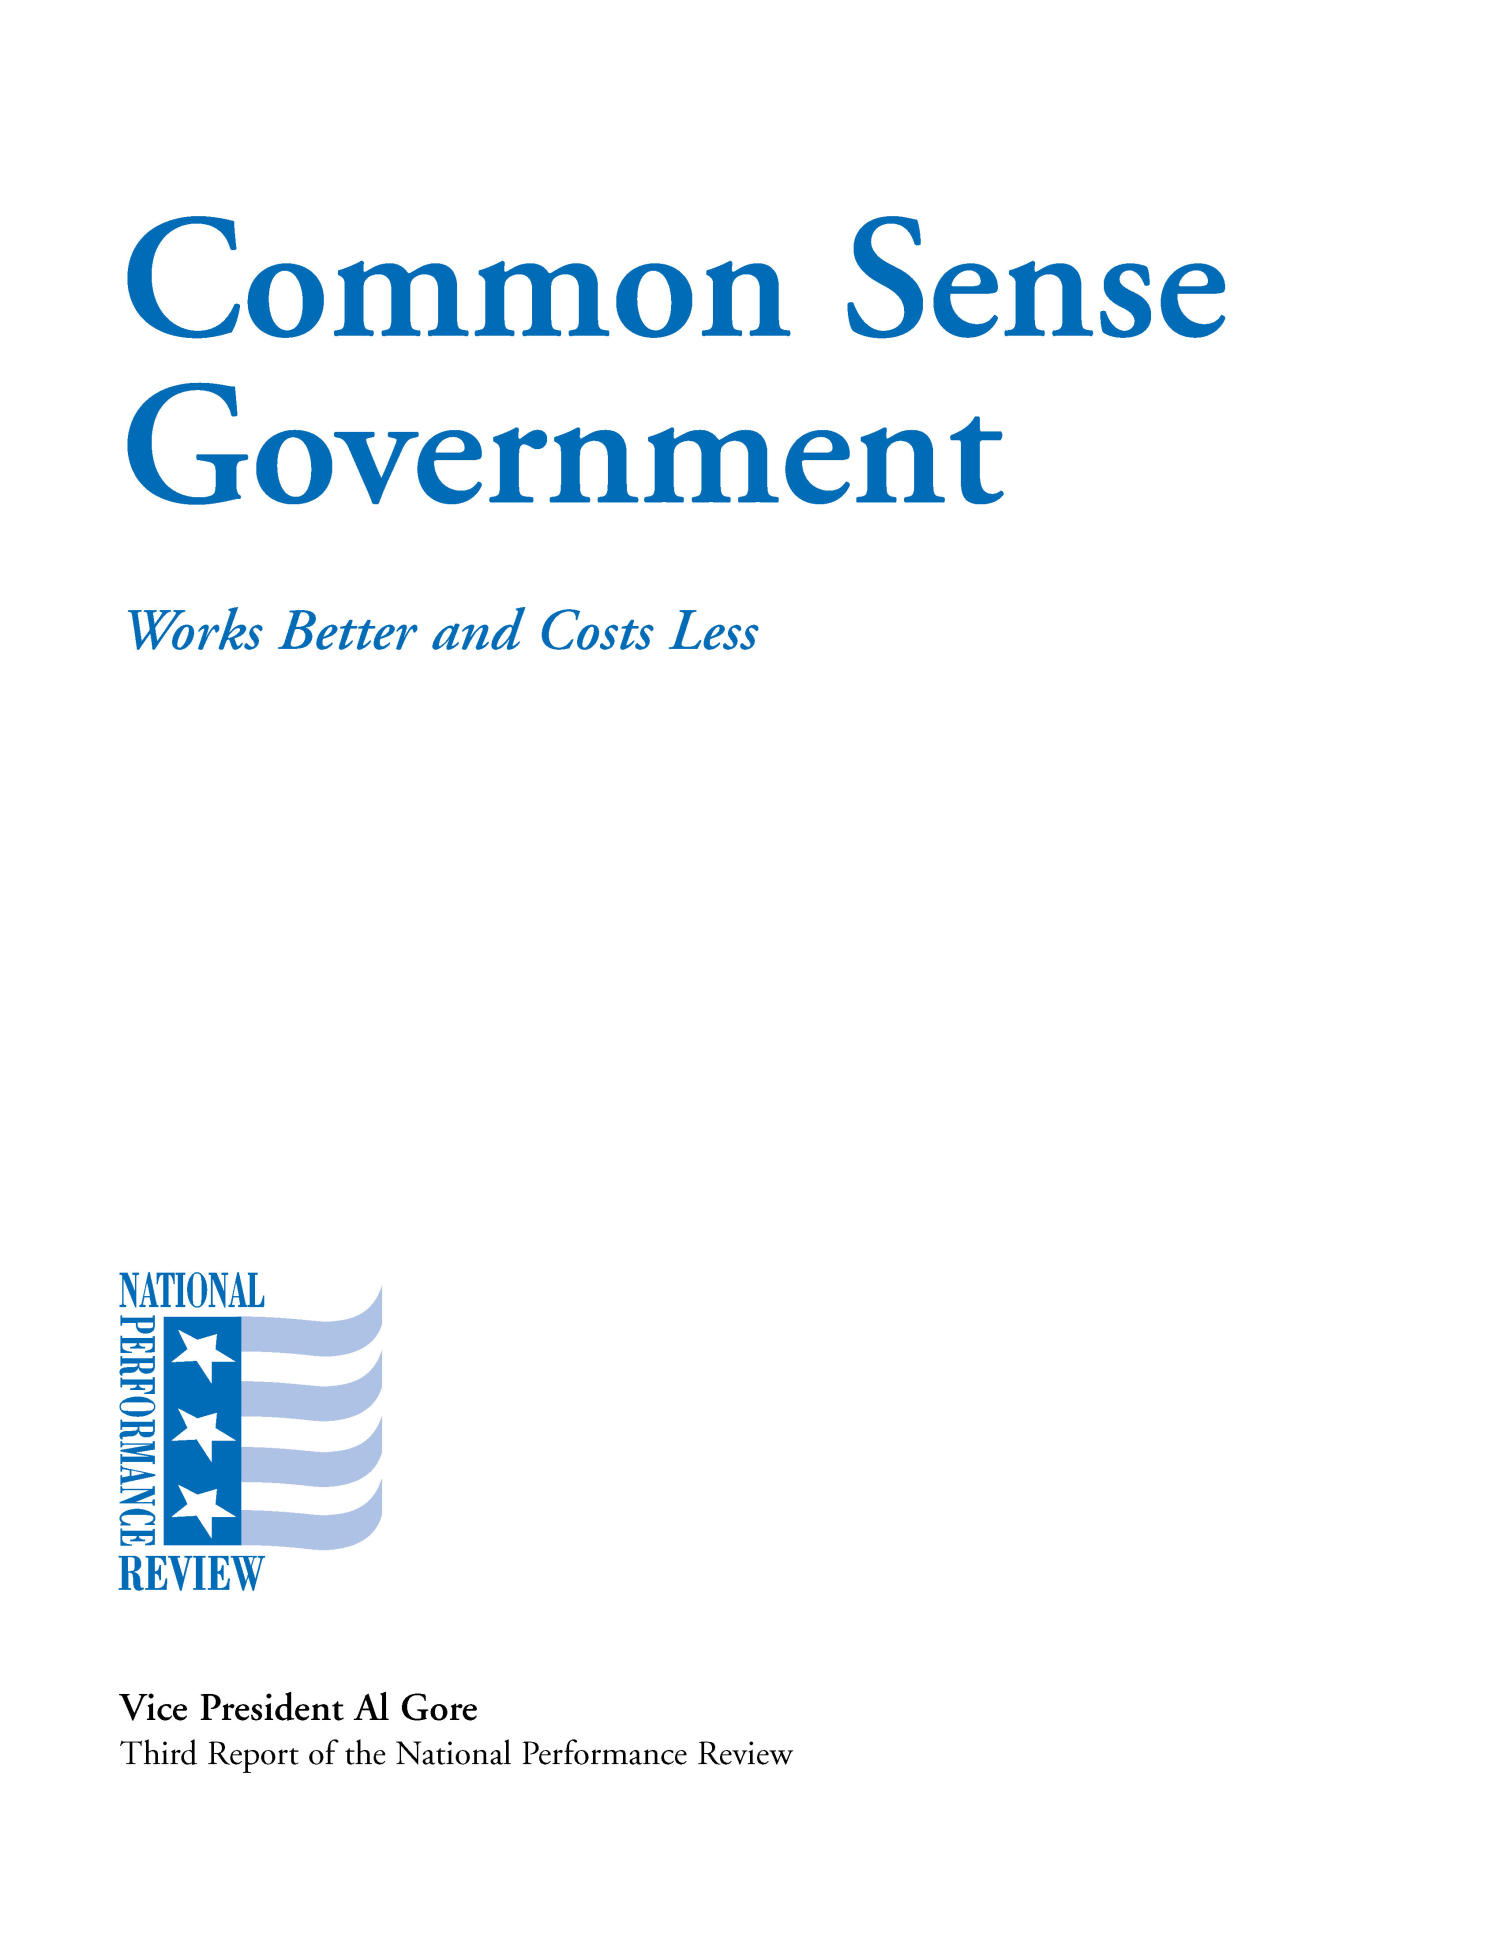 Common Sense Government: Works Better and Costs Less                                                                                                      None